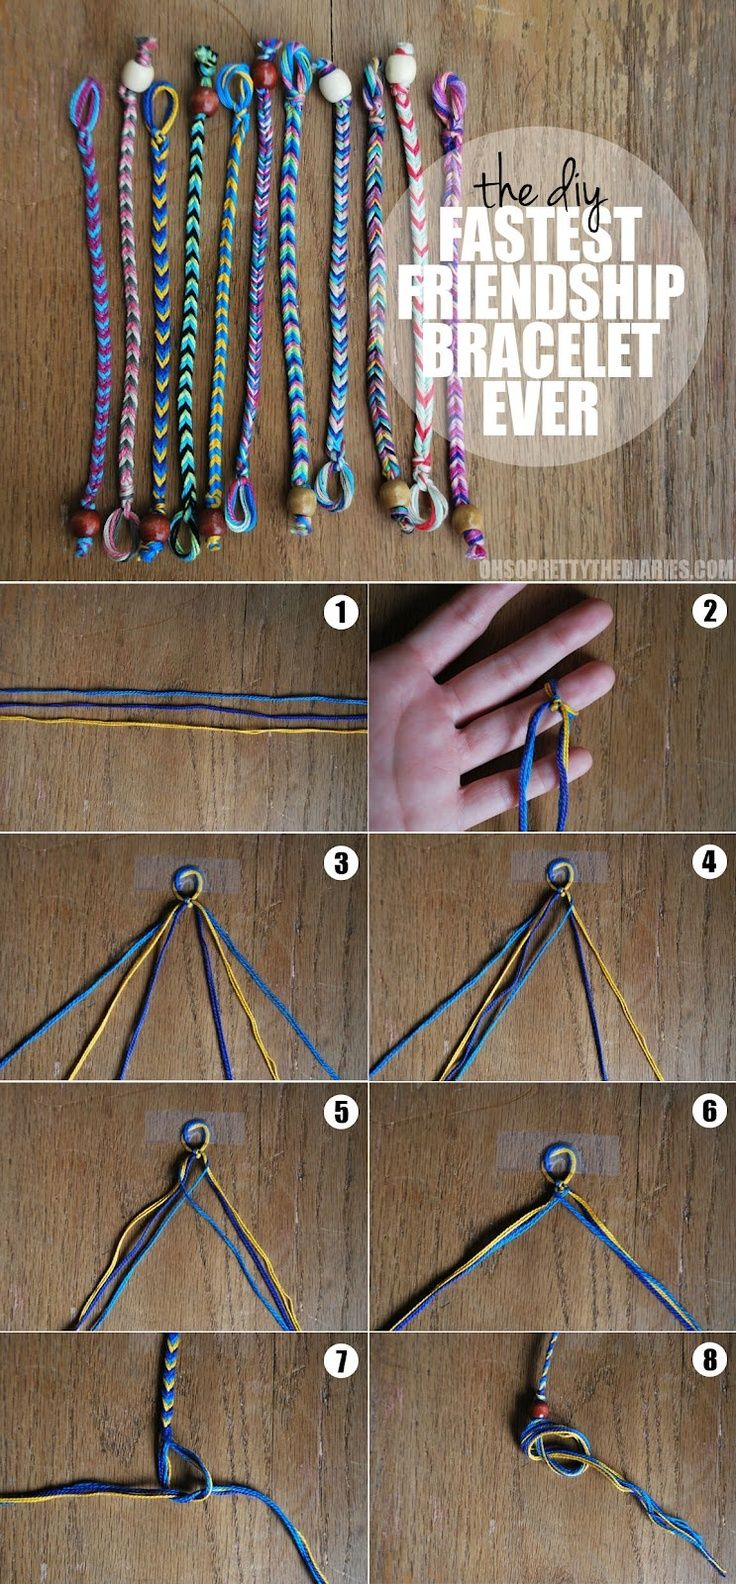 The Fastest Way To Make A Friendship Bracelet